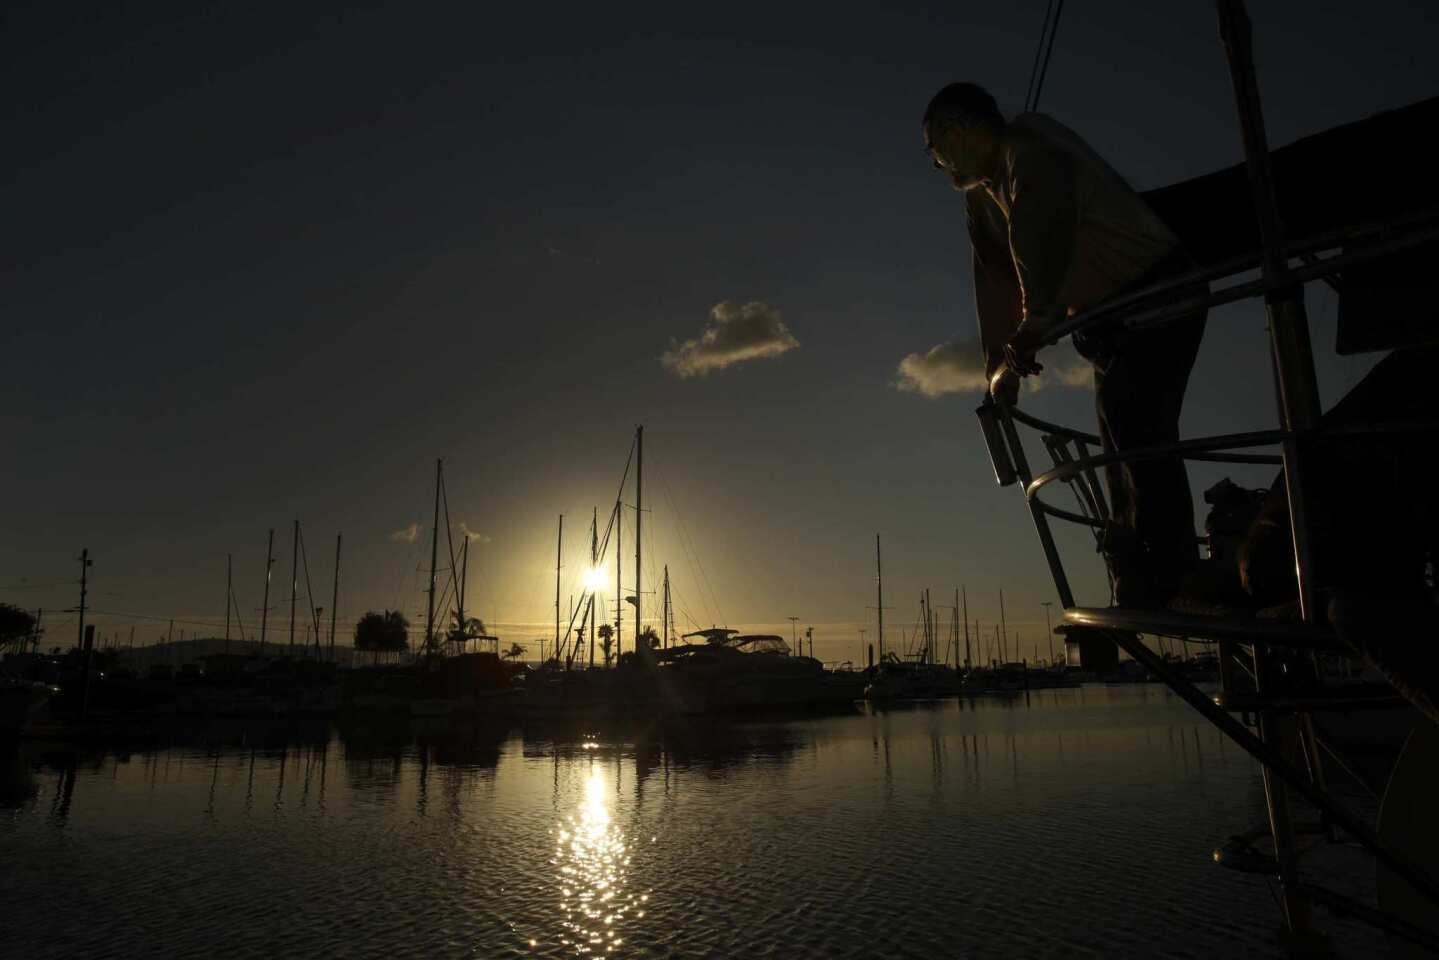 Live-aboard boat owner John Loftus watches the setting sun from the deck of his 43-foot sailboat moored at the Colonial Yacht Anchorage in Wilmington. He is among 95 boat owners who were served with eviction notices last month.